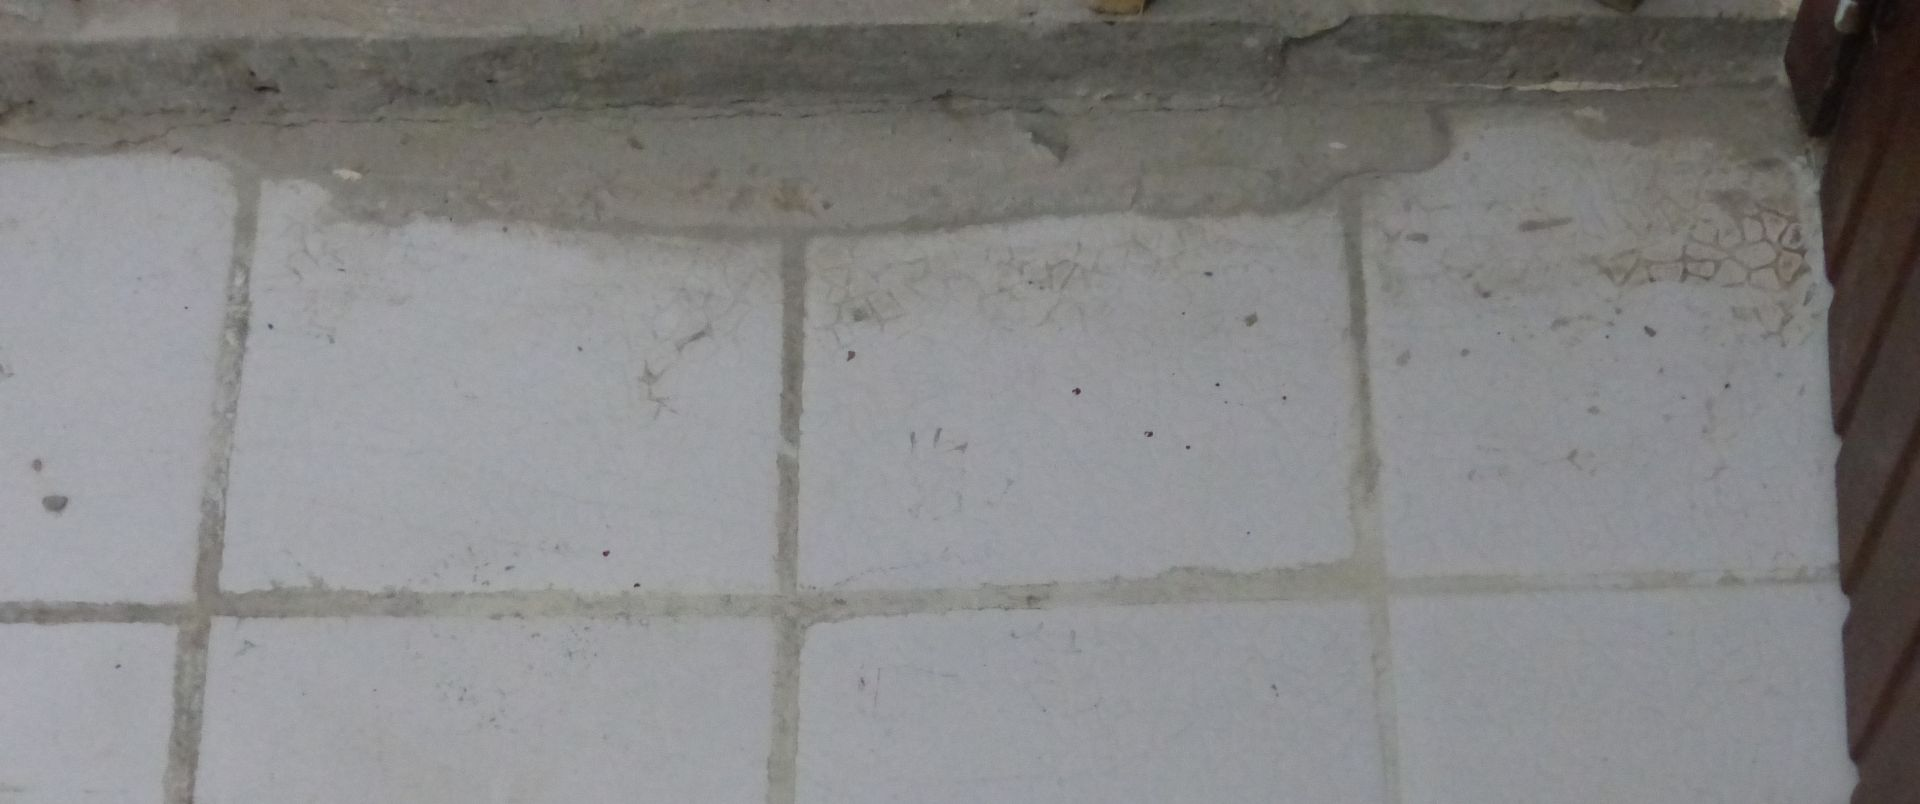 P2820994 cement on tile floor